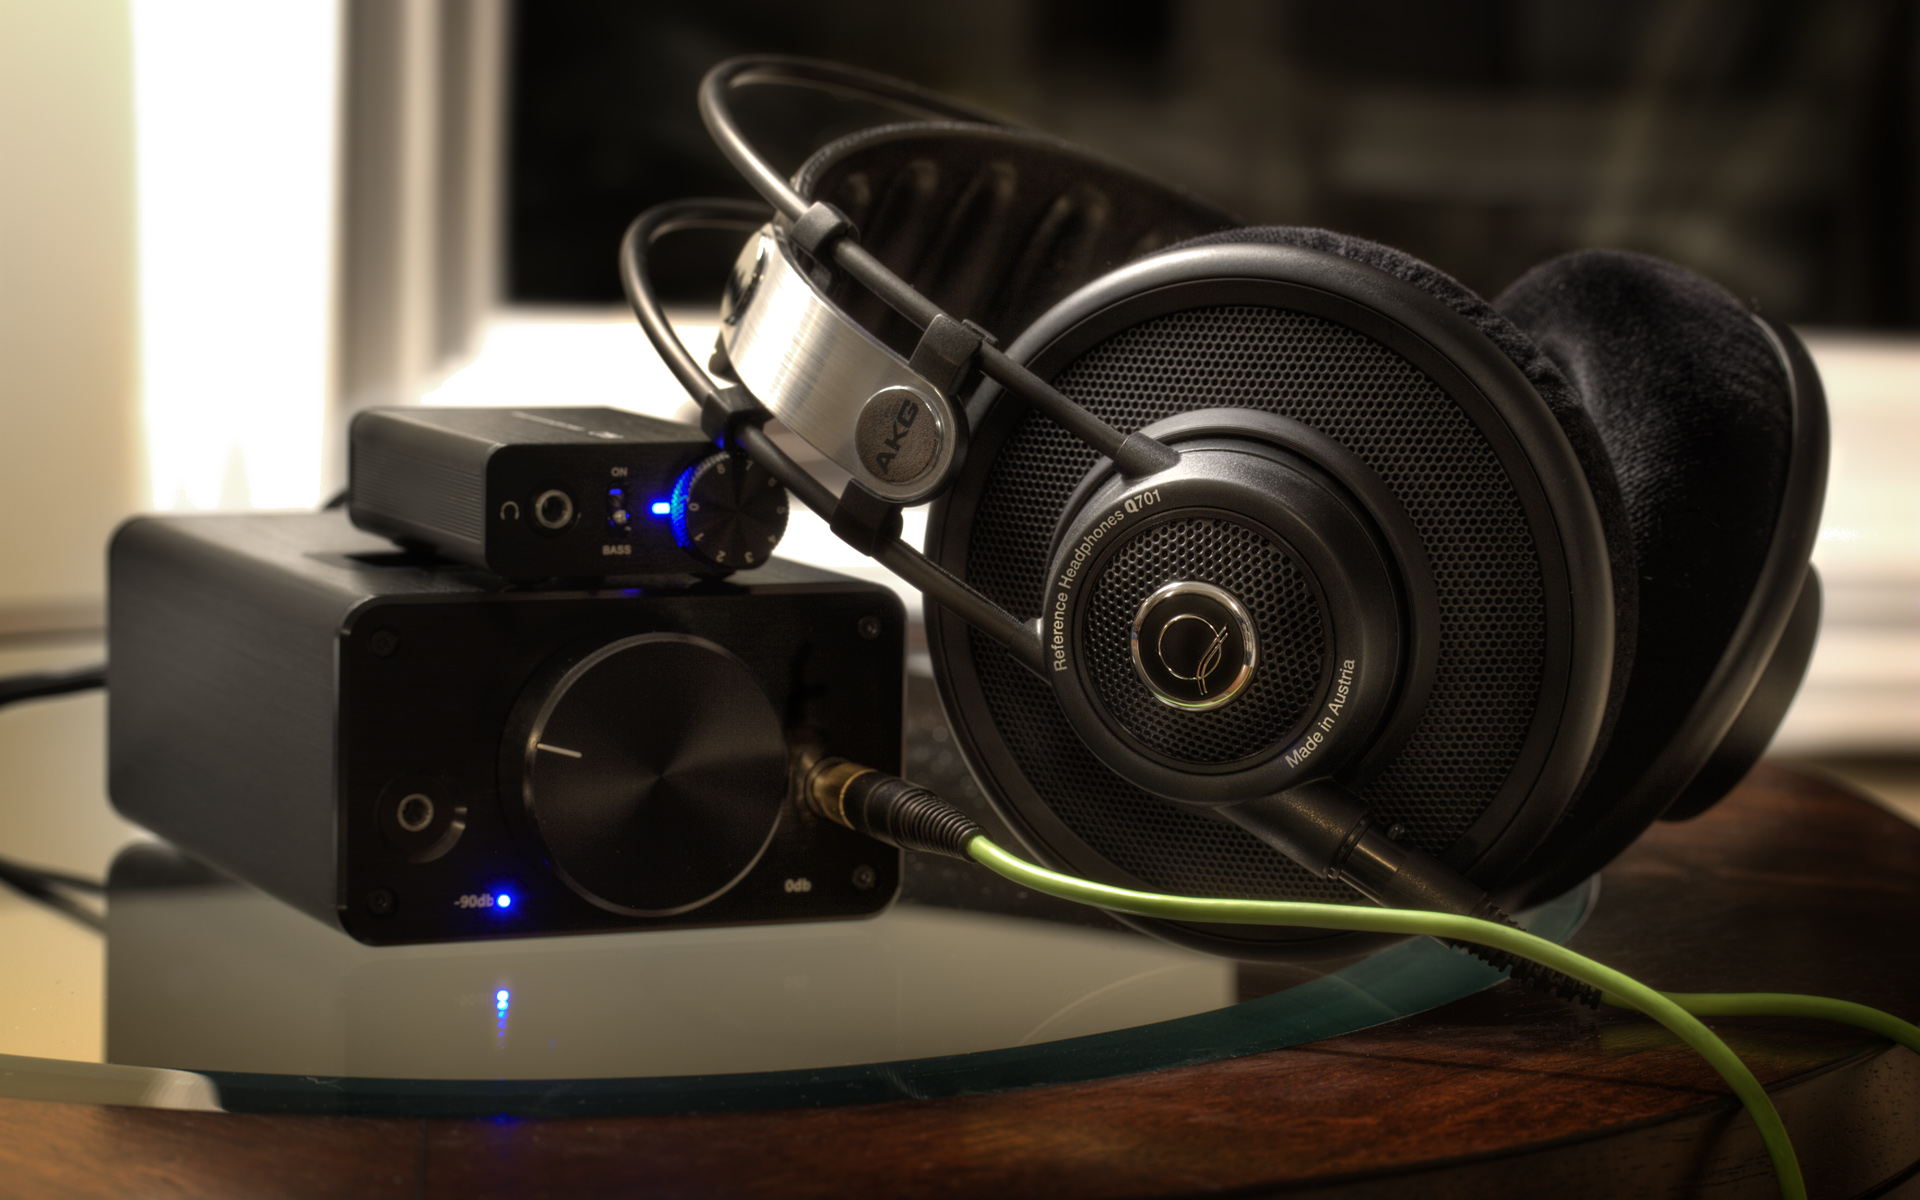 http://audiophilereview.com/images/yourkids5a.jpg